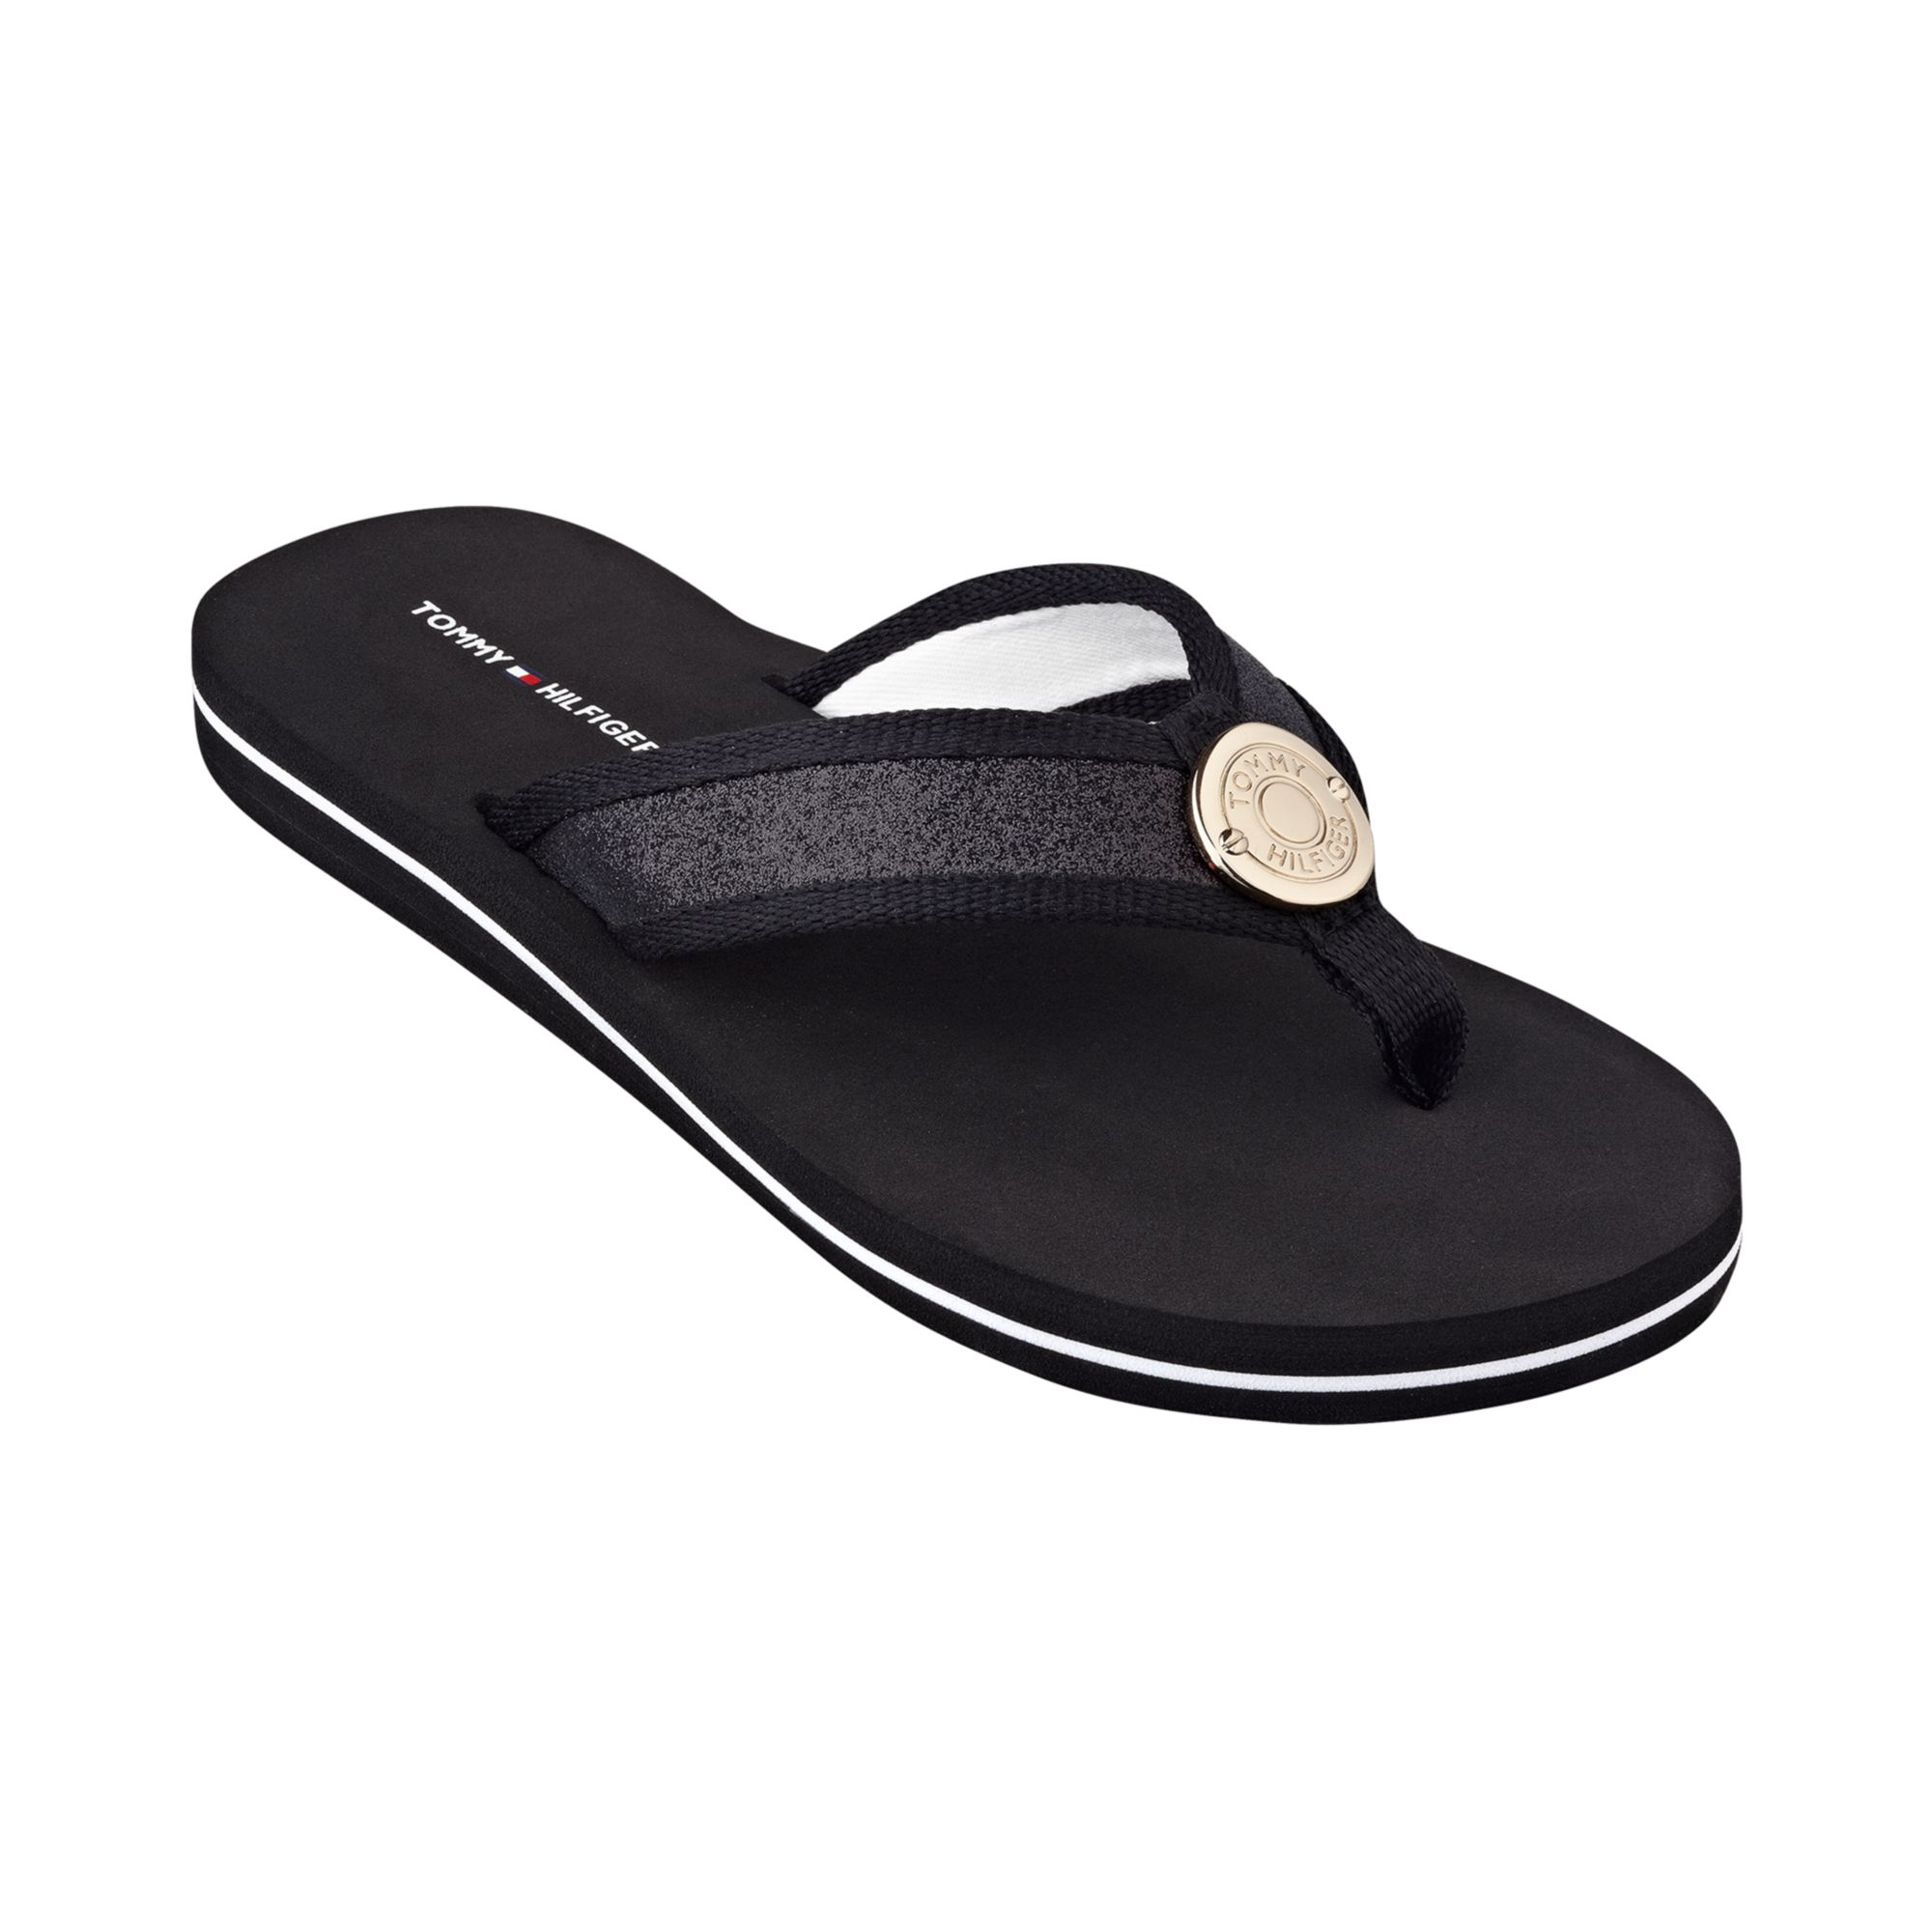 tommy hilfiger women 39 s carma glitter flip flops in black lyst. Black Bedroom Furniture Sets. Home Design Ideas